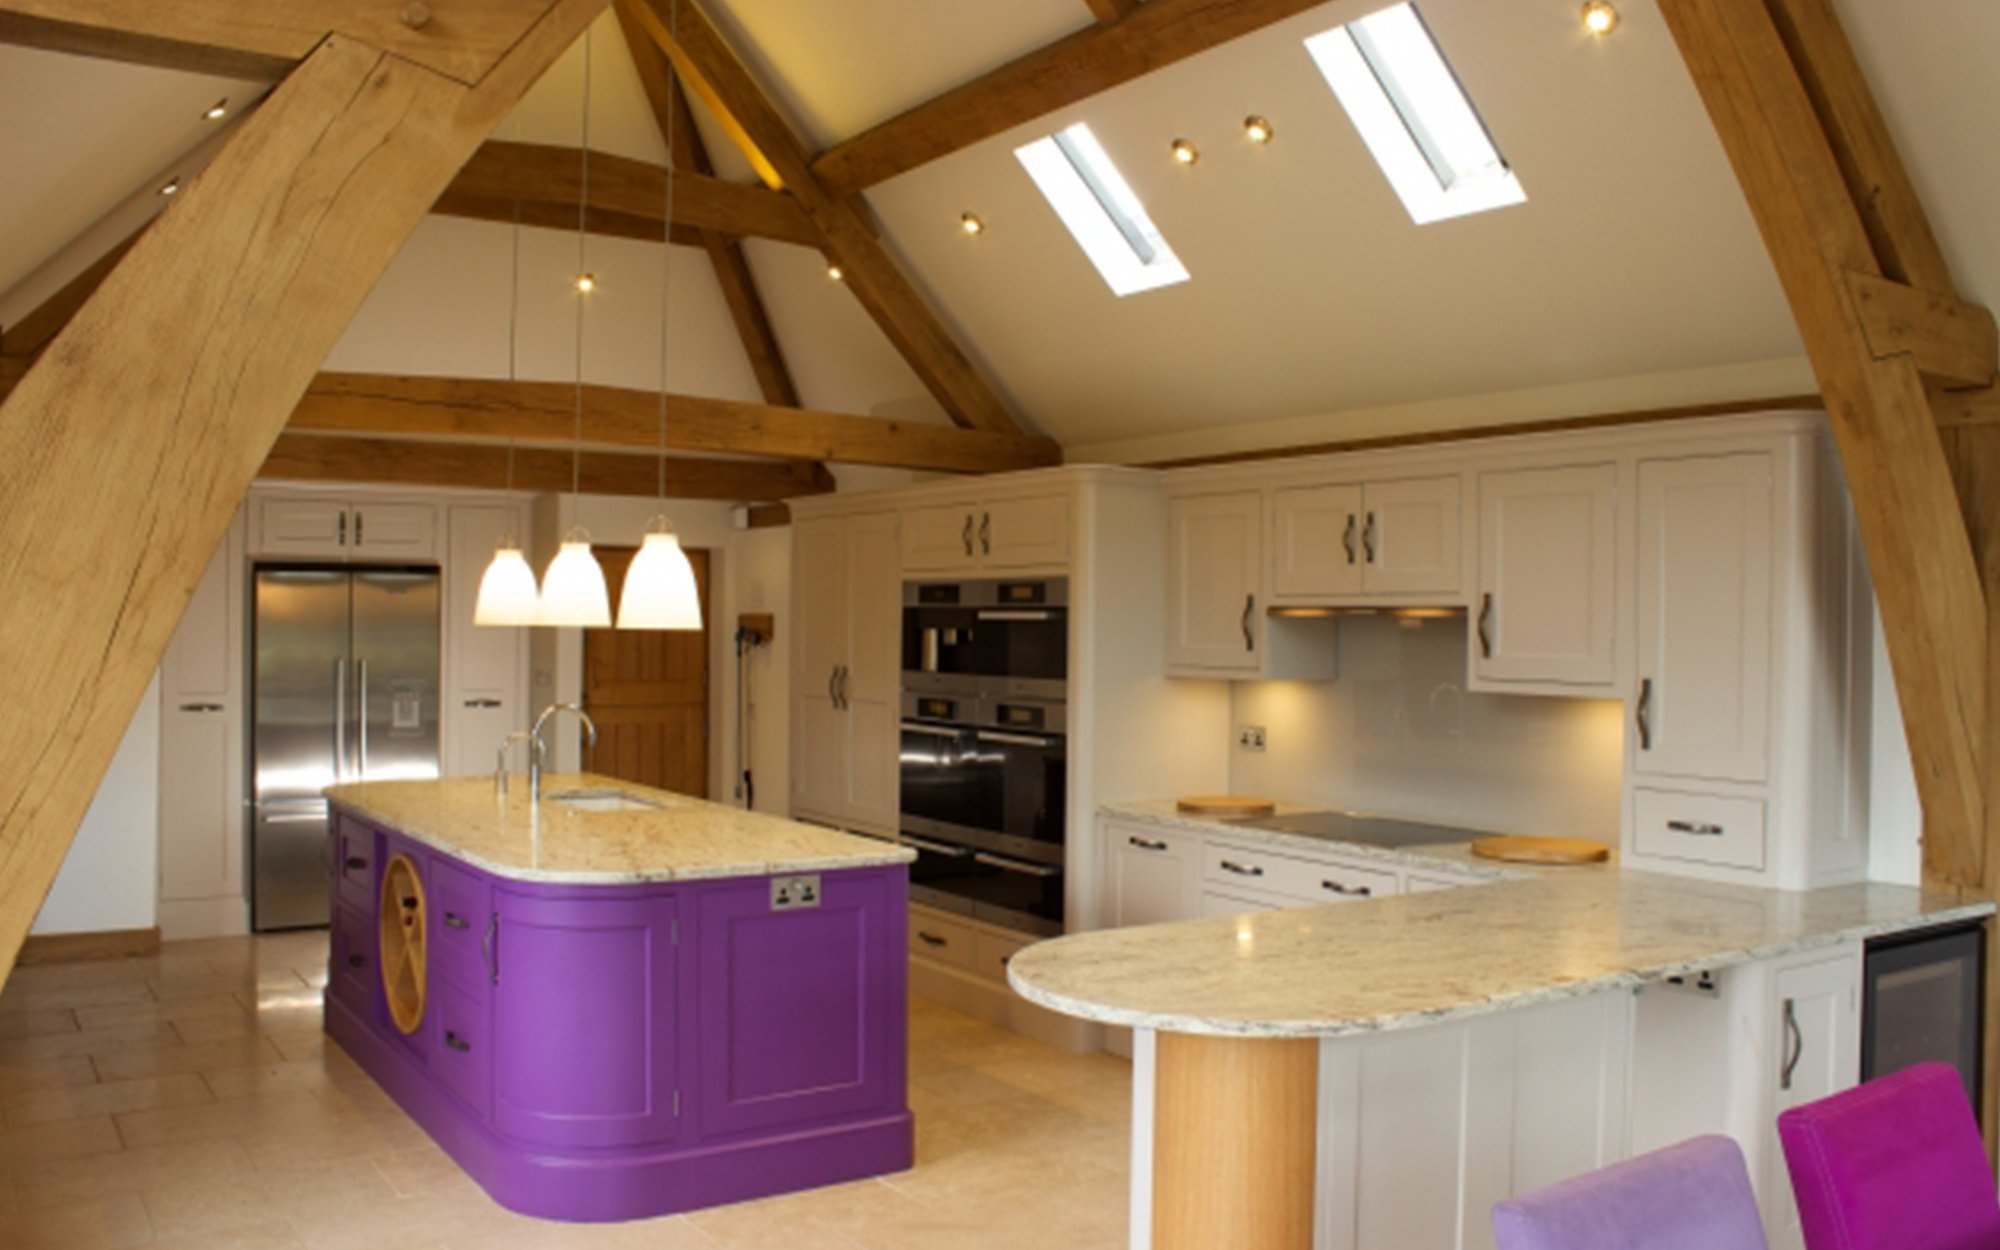 Luxury Bespoke Kitchen in New Oak Barn - Bourne's Fine Furniture